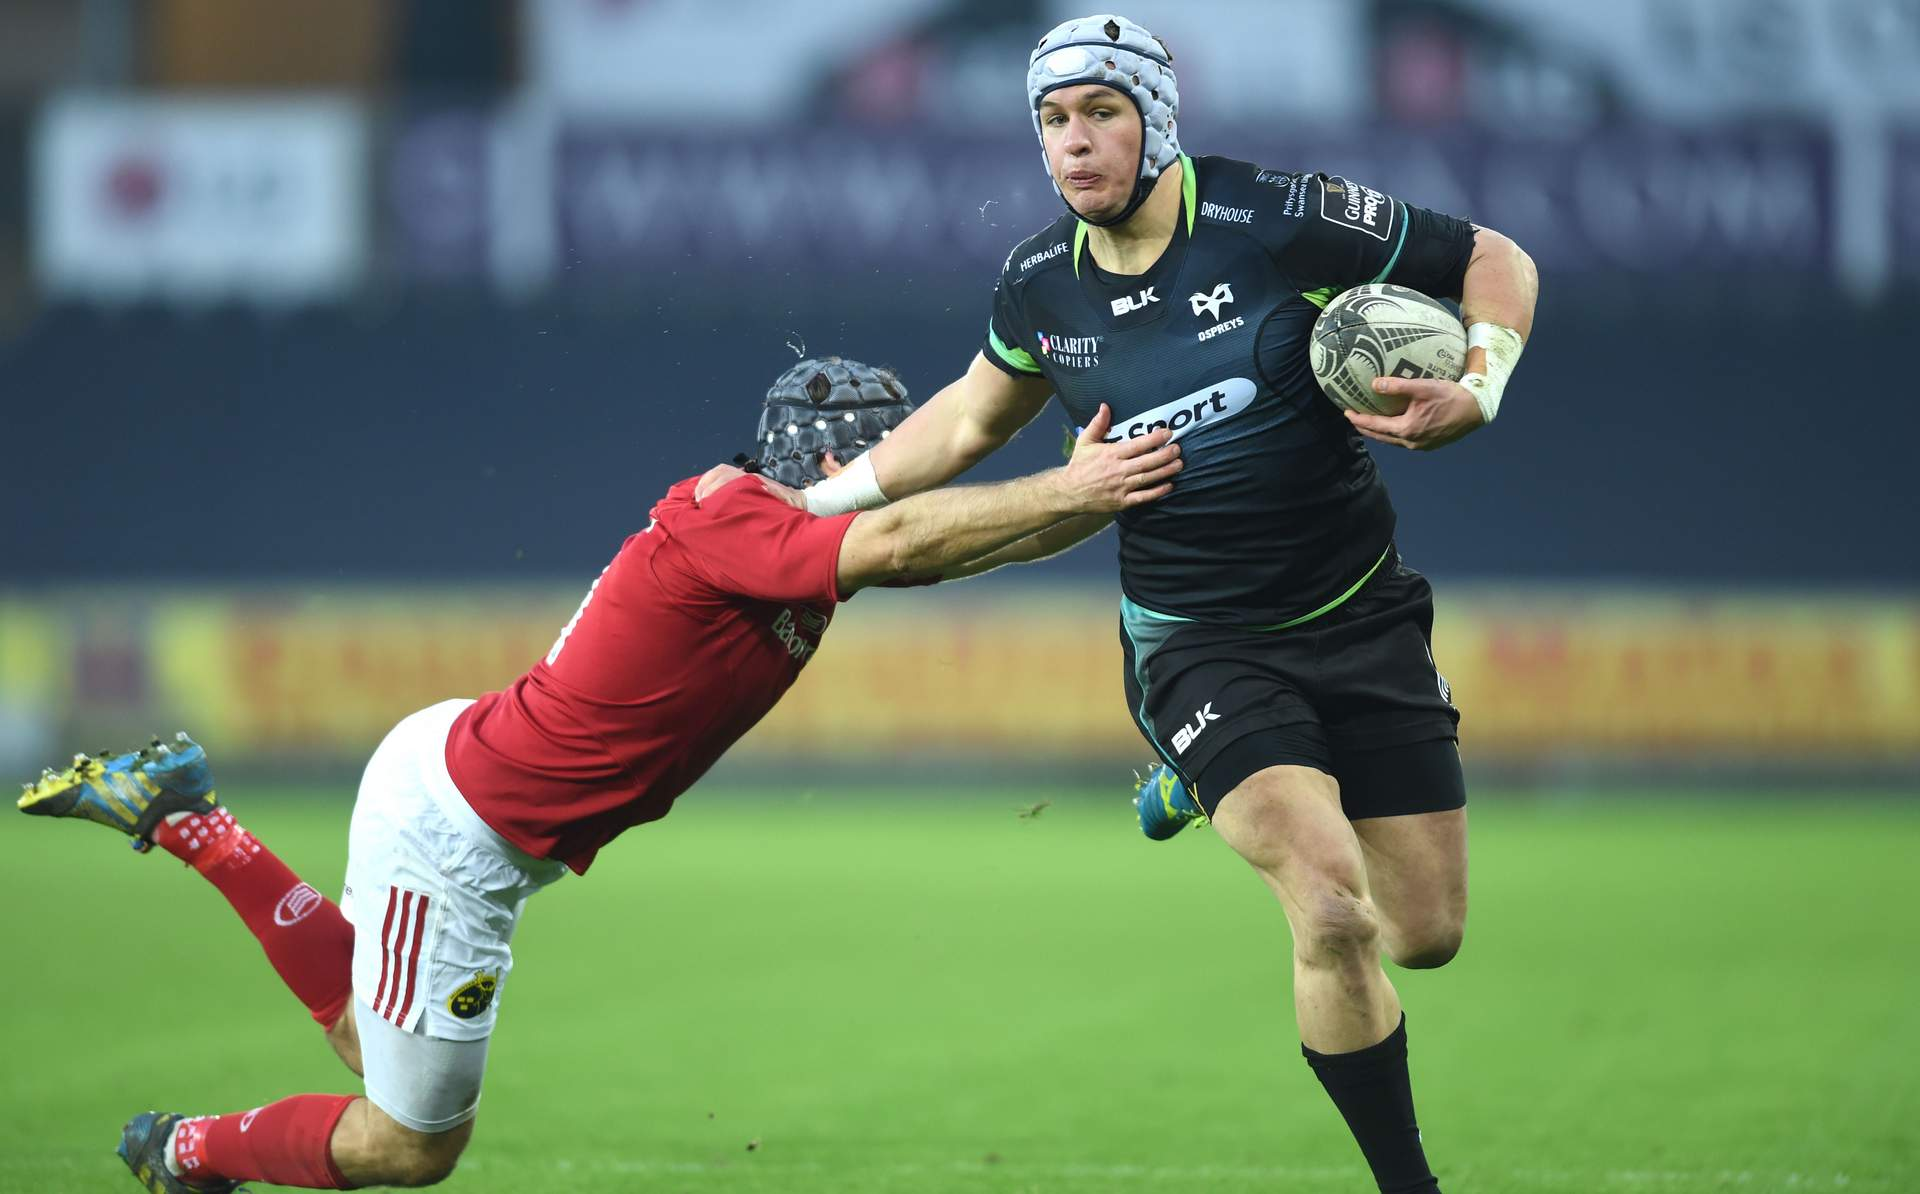 REPORT: Ospreys edged out